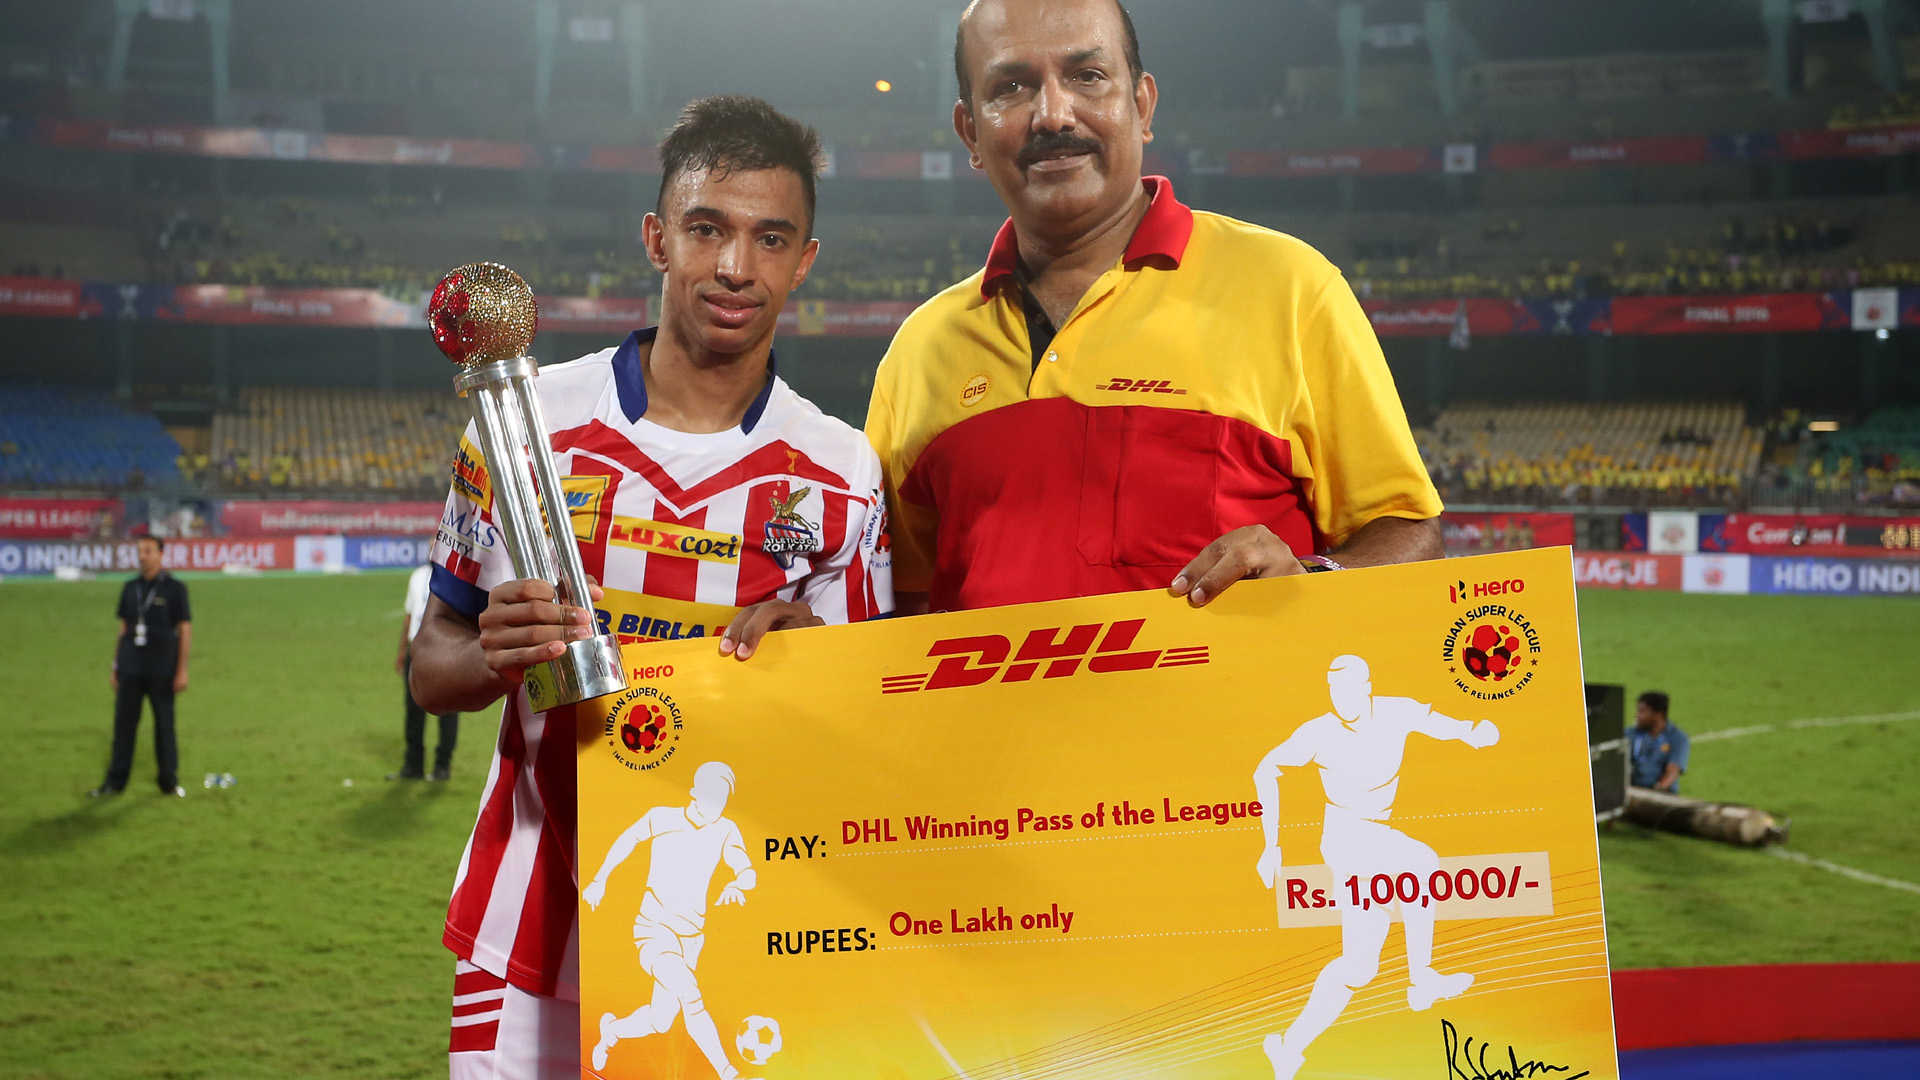 Sameehg Doutie Winning Pass of the ISL season 3 2016 award